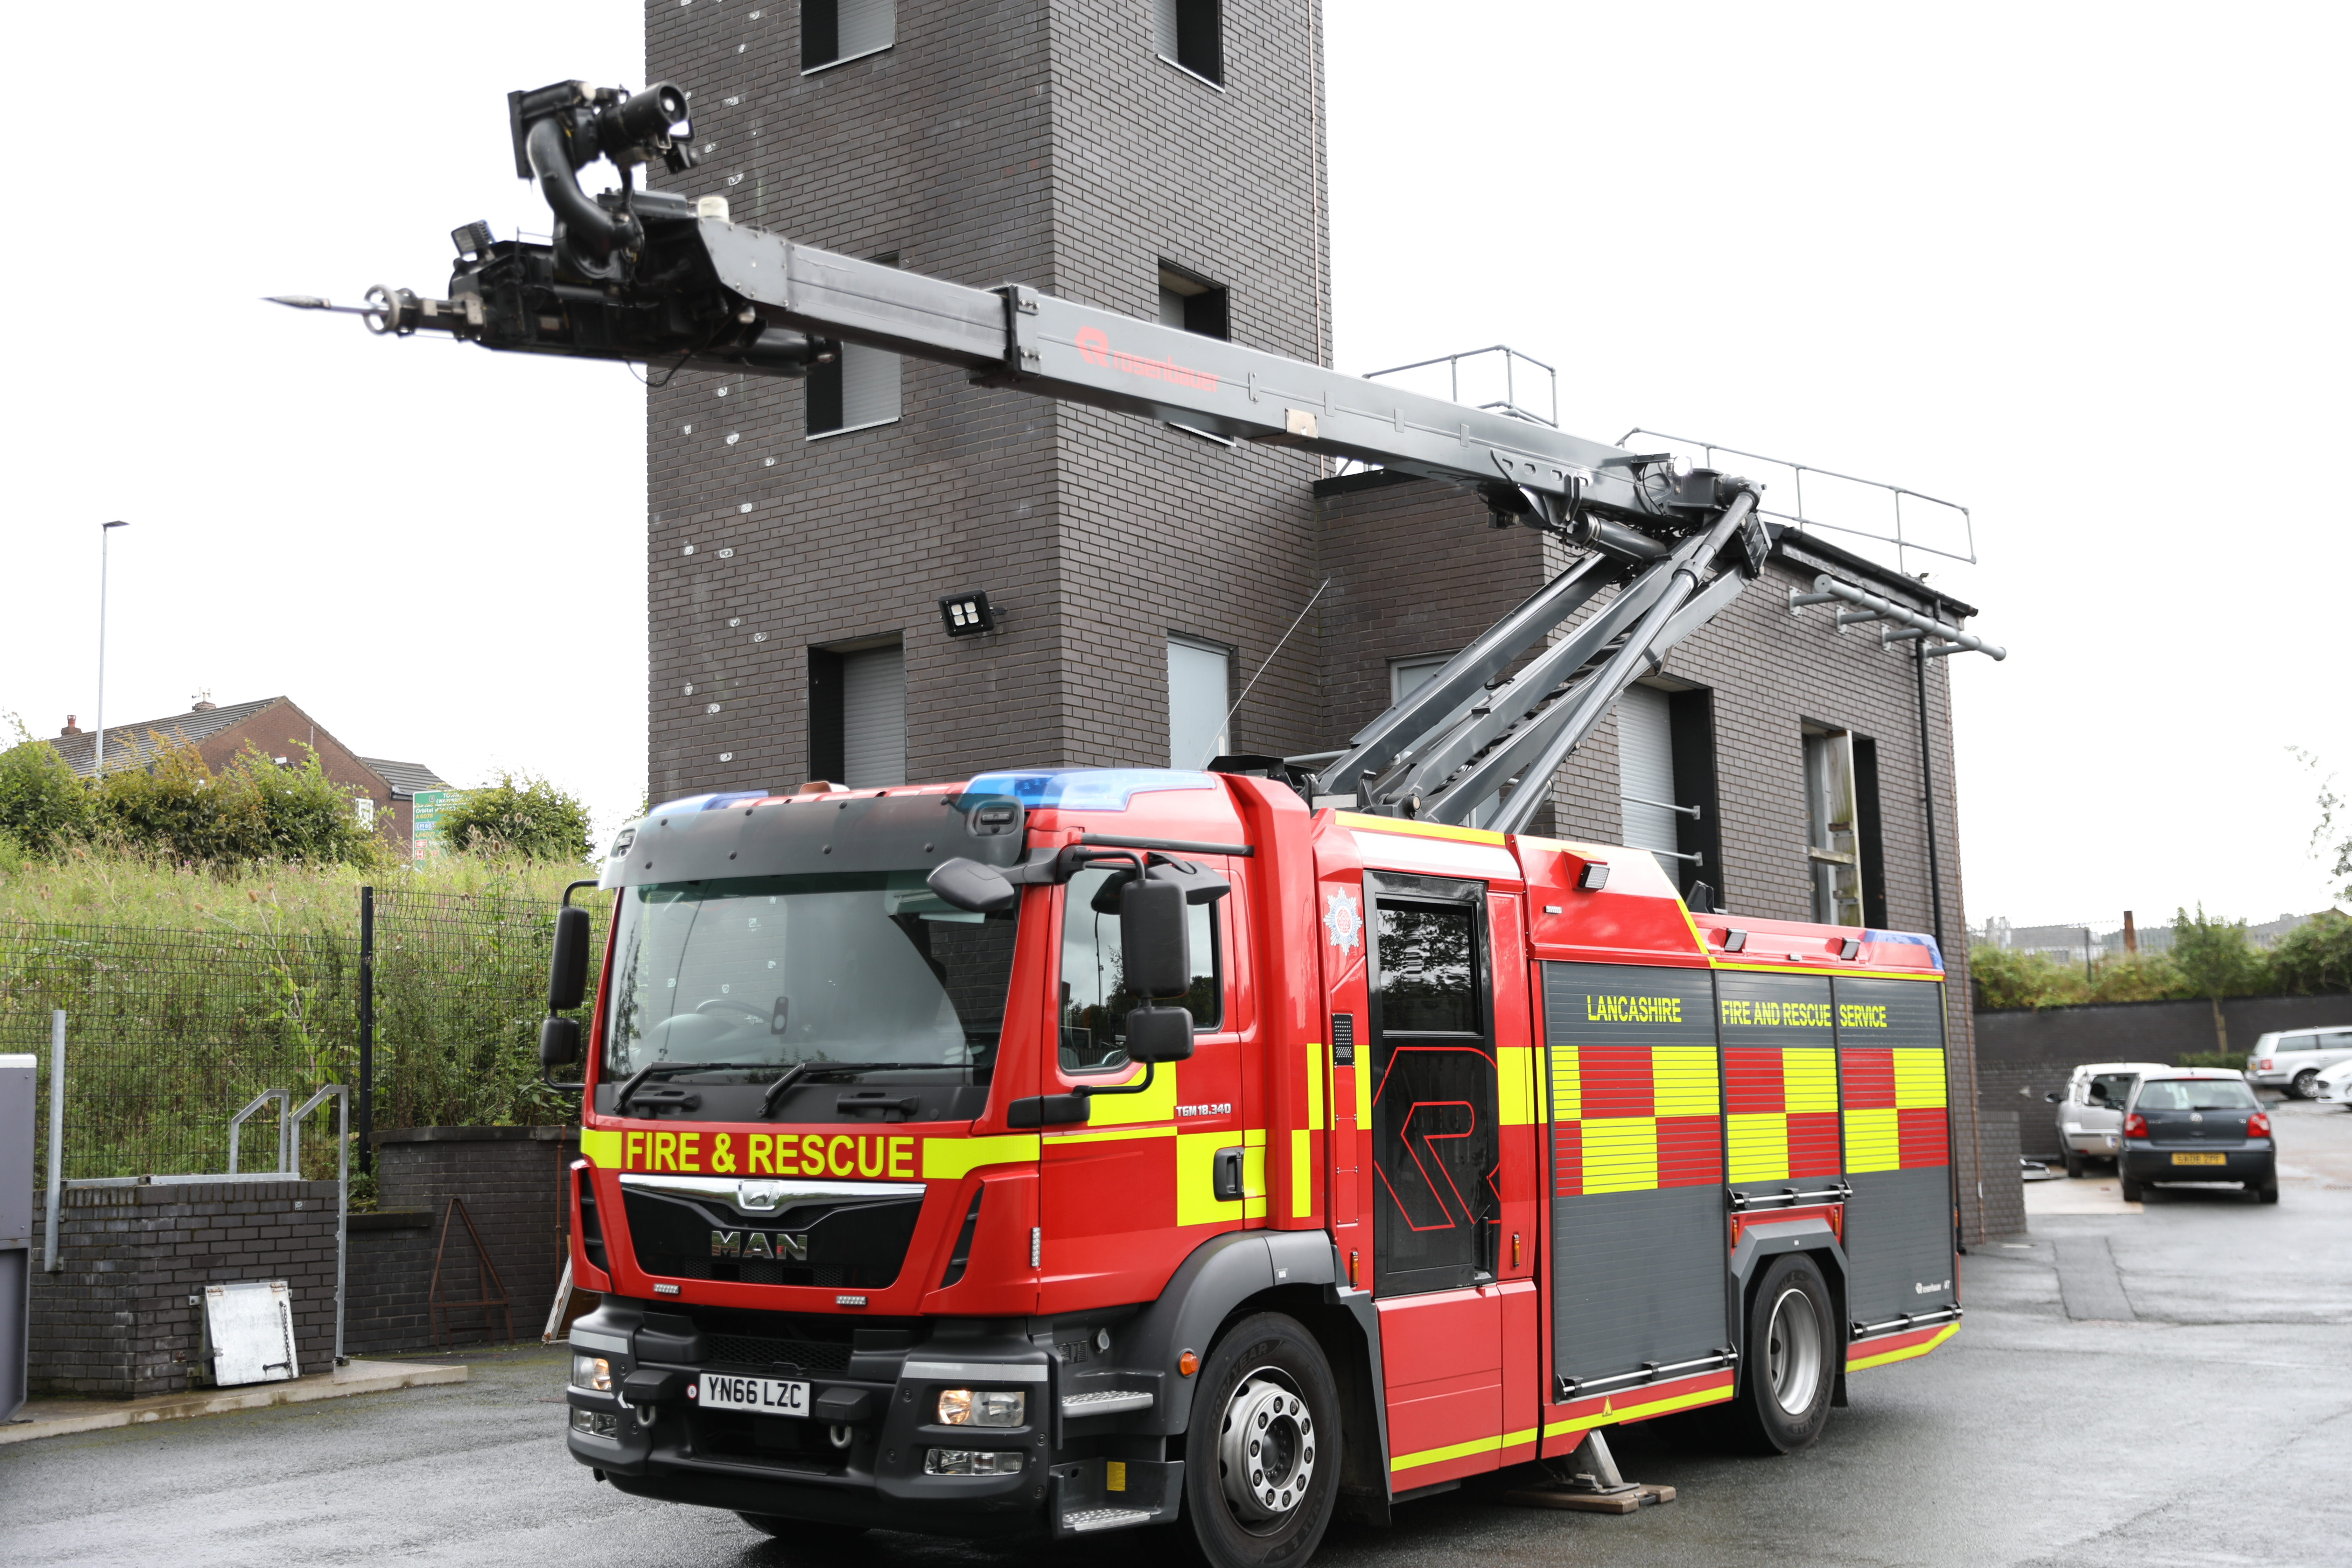 Lancashire Fire and Rescue Service launch new fire engine